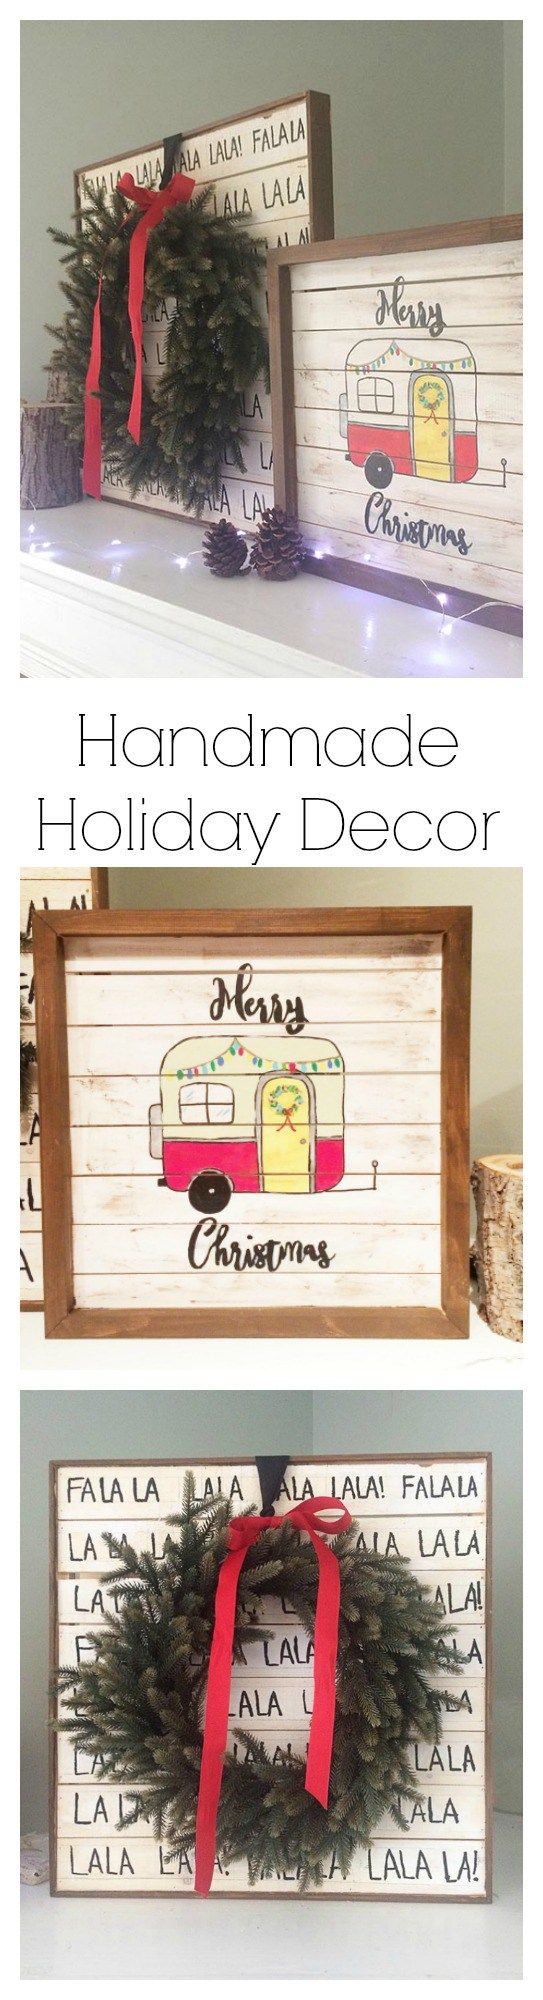 Handmade Holiday Decor - pallet wood signs